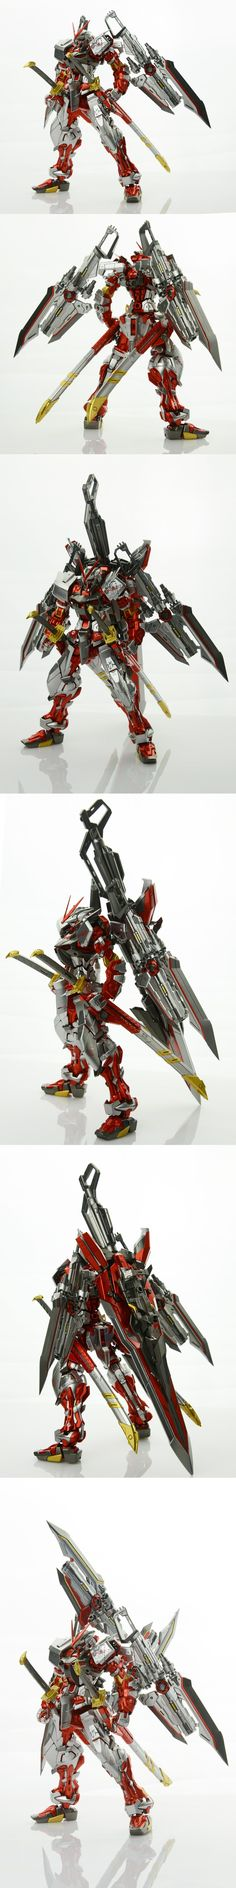 Gundam Astray Red Frame Custom | MG 1:100 scale